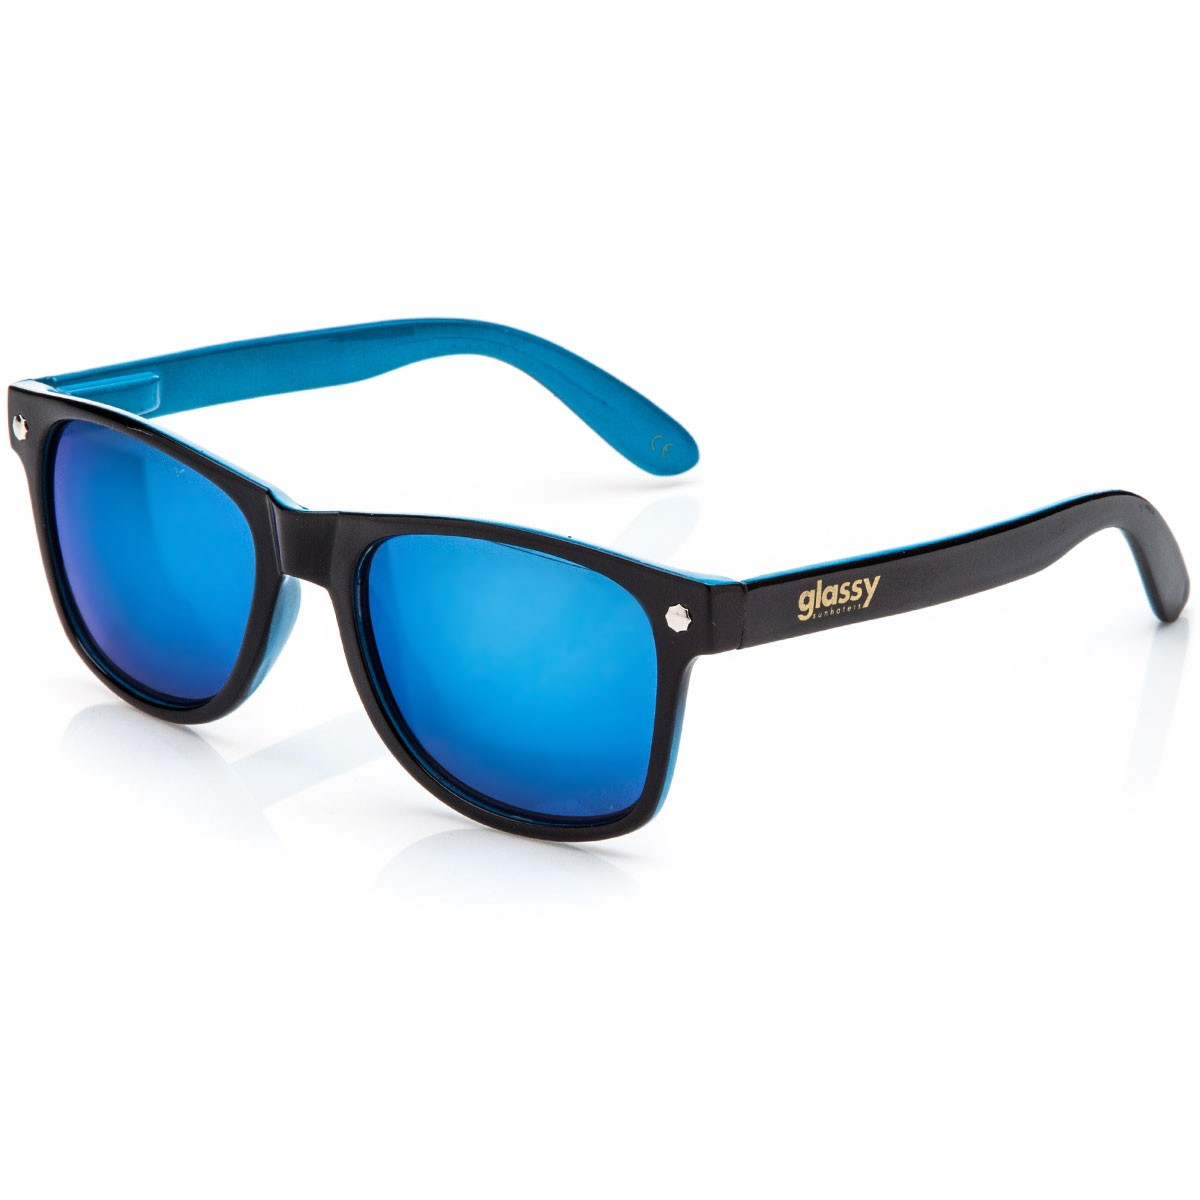 Glassy Leonard Sunglasses Black Blue Blue Mirror